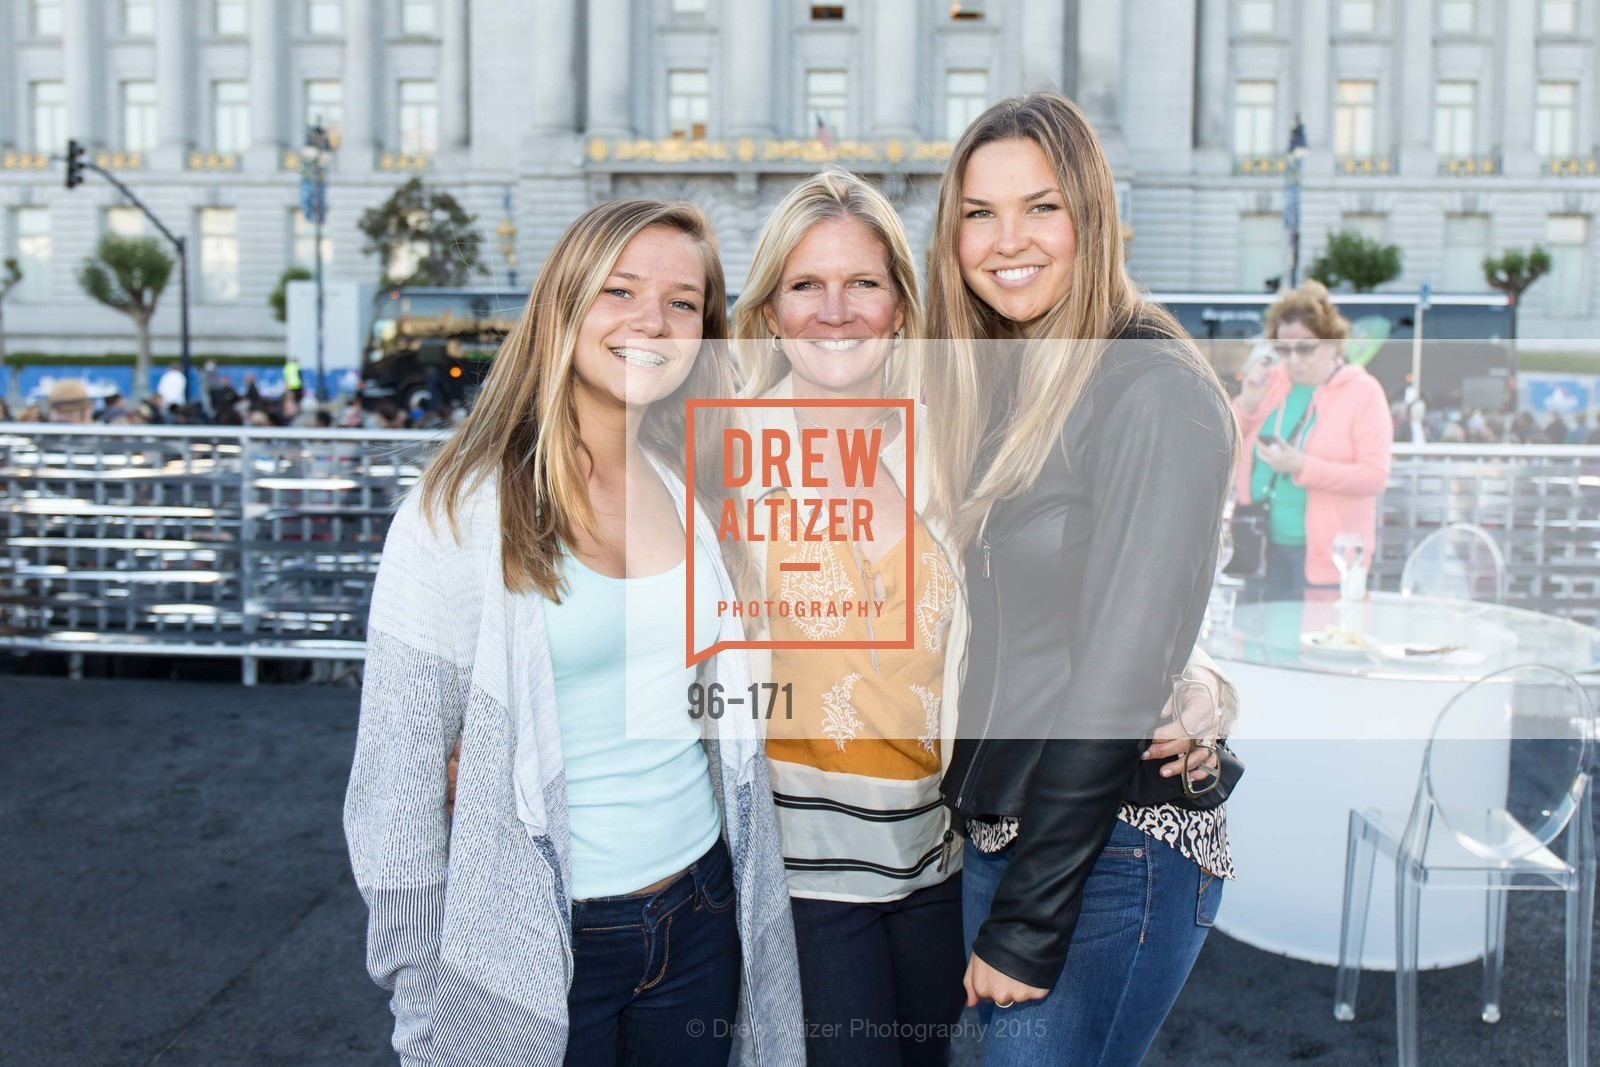 Top pics, San Francisco City Hall Centennial Celebration, June 18th, 2015, Photo,Drew Altizer, Drew Altizer Photography, full-service agency, private events, San Francisco photographer, photographer california